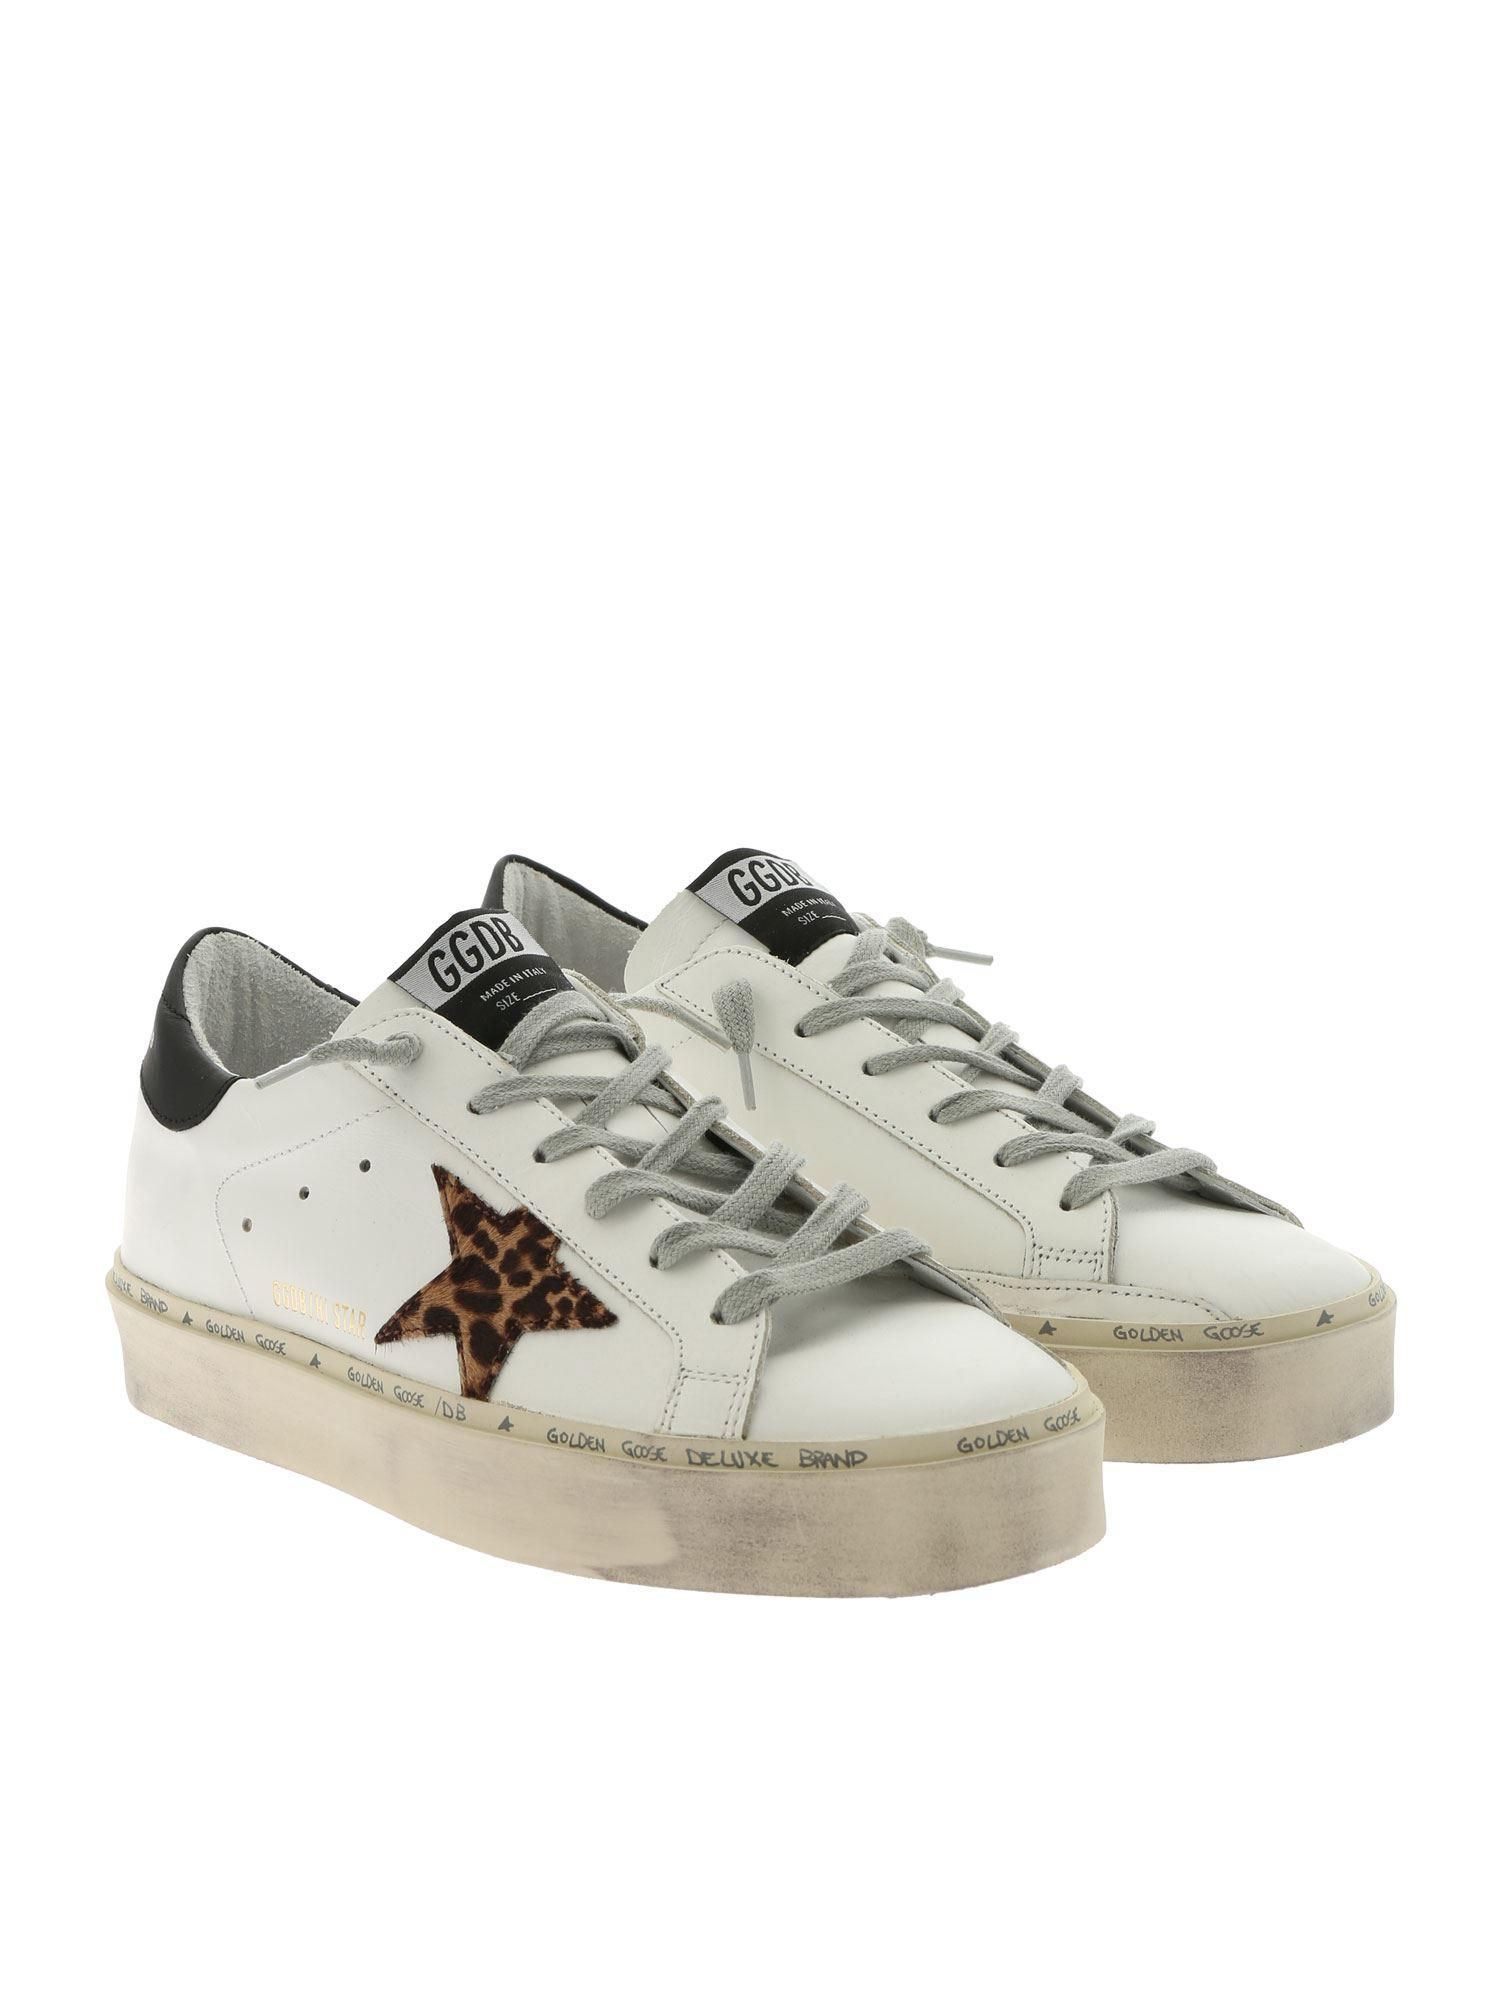 52c21bd03d1d Lyst - Golden Goose Deluxe Brand White Hi Star Sneakers With Animalier Star  in White